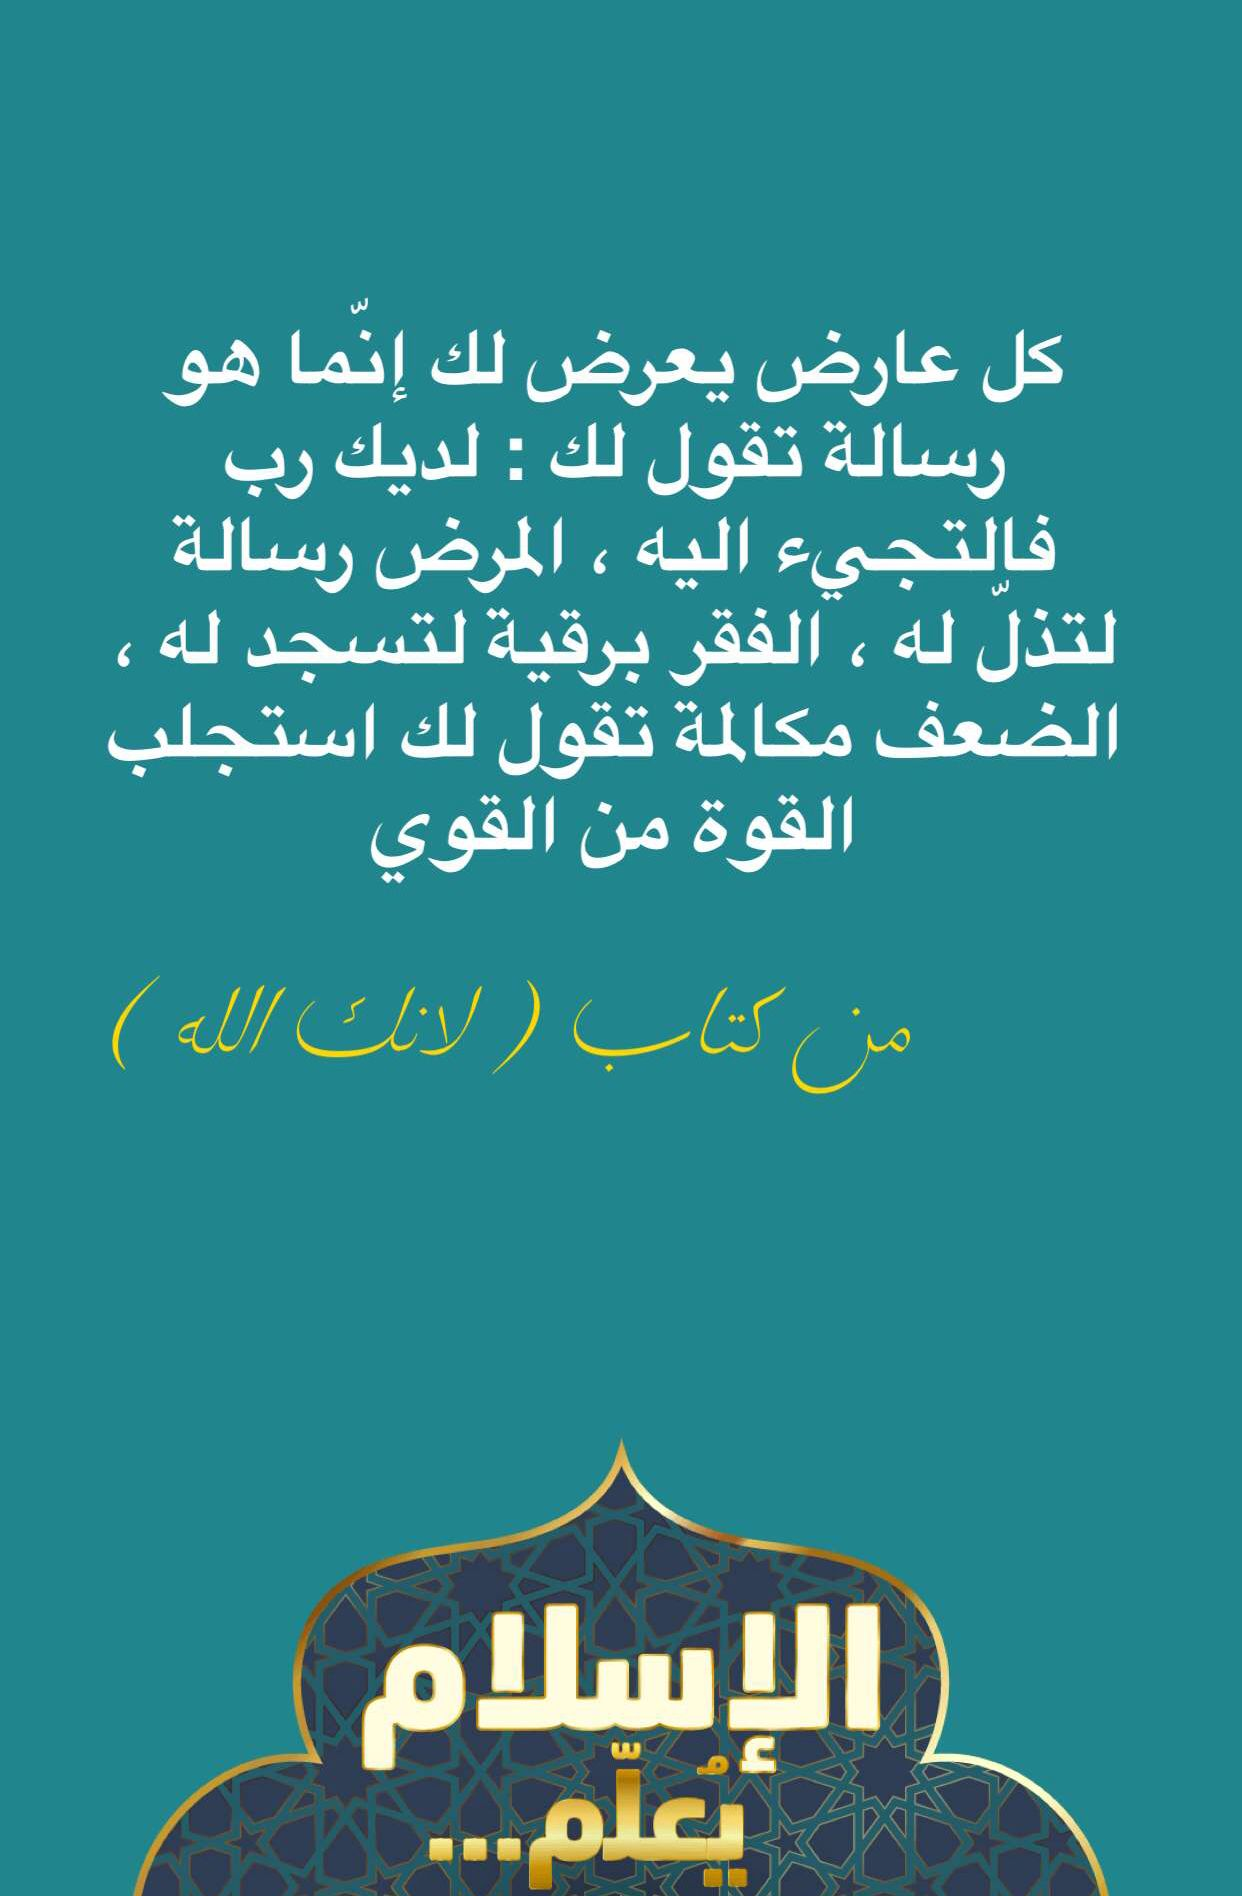 Pin By Moataz Aidaros On منوعات Arabic Quotes Quotes Arabic